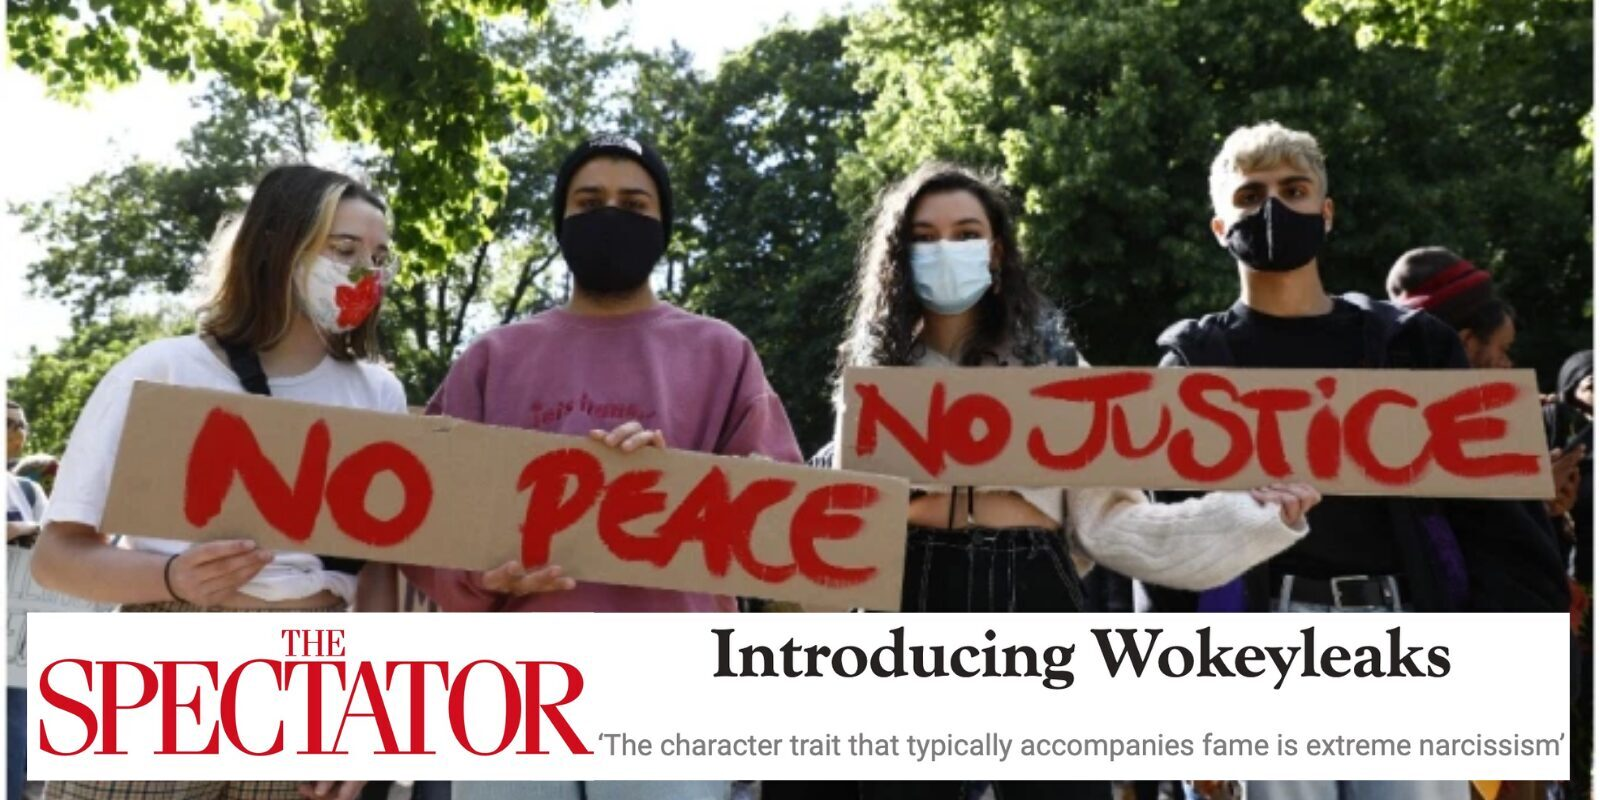 Spectator's new 'Wokeyleaks' lets whistleblowers anonymously call out social justice indoctrination